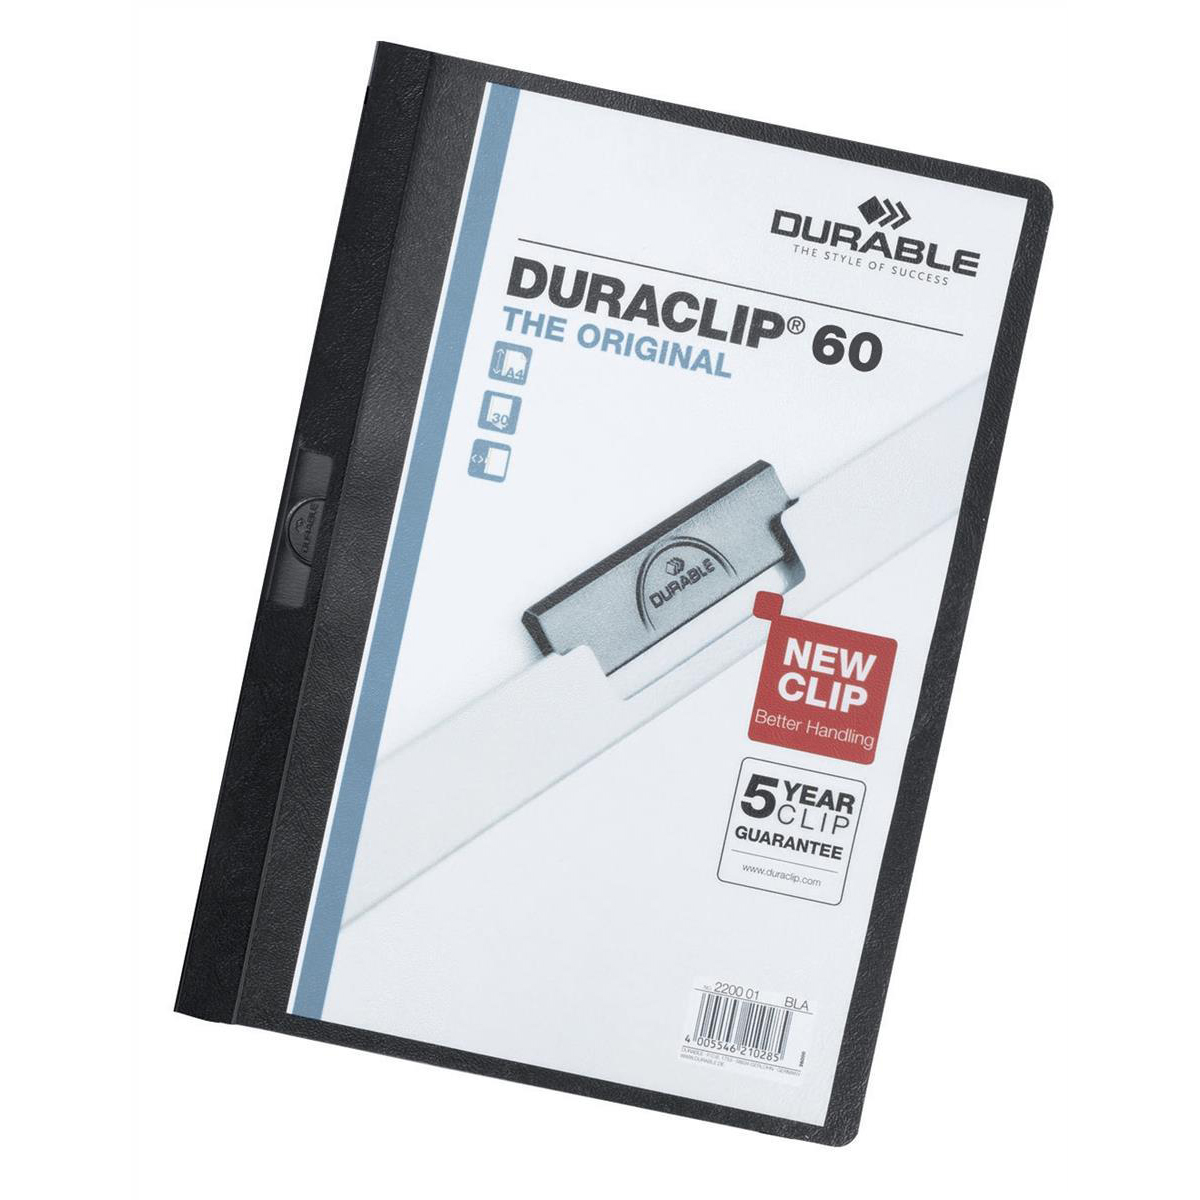 Part Files Durable Duraclip Folder PVC Clear Front 6mm Spine for 60 Sheets A4 Black Ref 2209/01 [Pack 25]